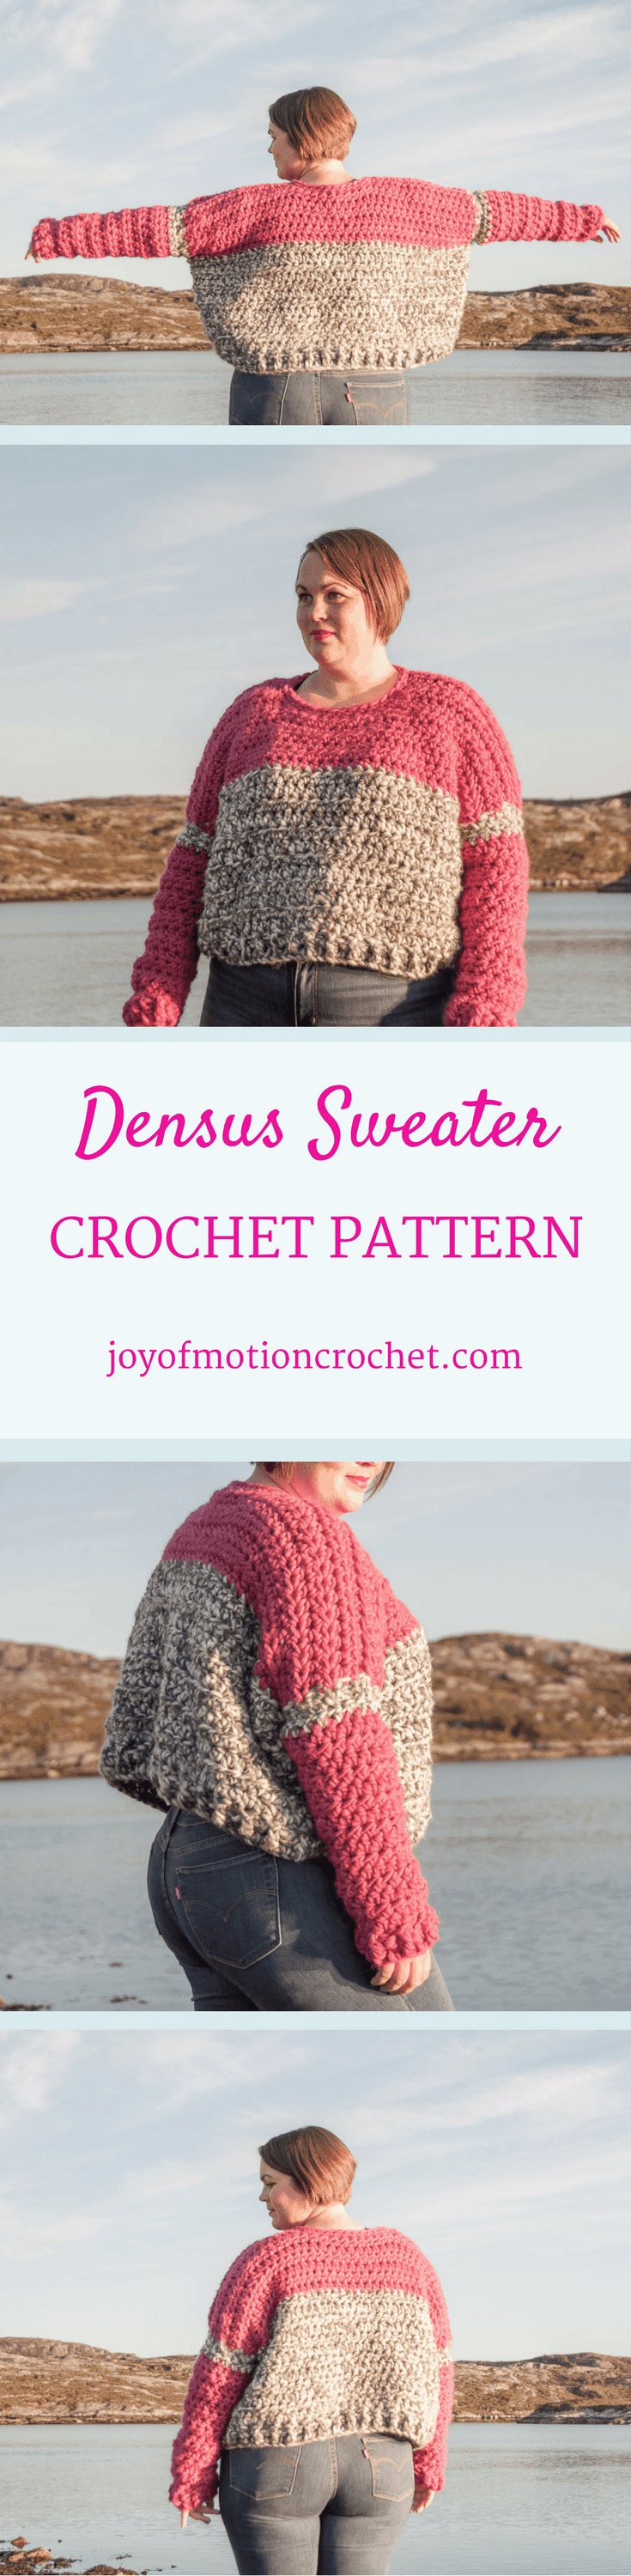 The Densus Sweater a crochet pattern. Woman's sweater crochet pattern with skill level easy. Make this fashionable crochet sweater with you own hook & yarn. Sweater crochet pattern easy for her . Crochet sweater | woman's crochet sweater | crochet pattern for her | fashionable crochet sweater | interesting crochet sweater | click to learn more or repin to save it forever.